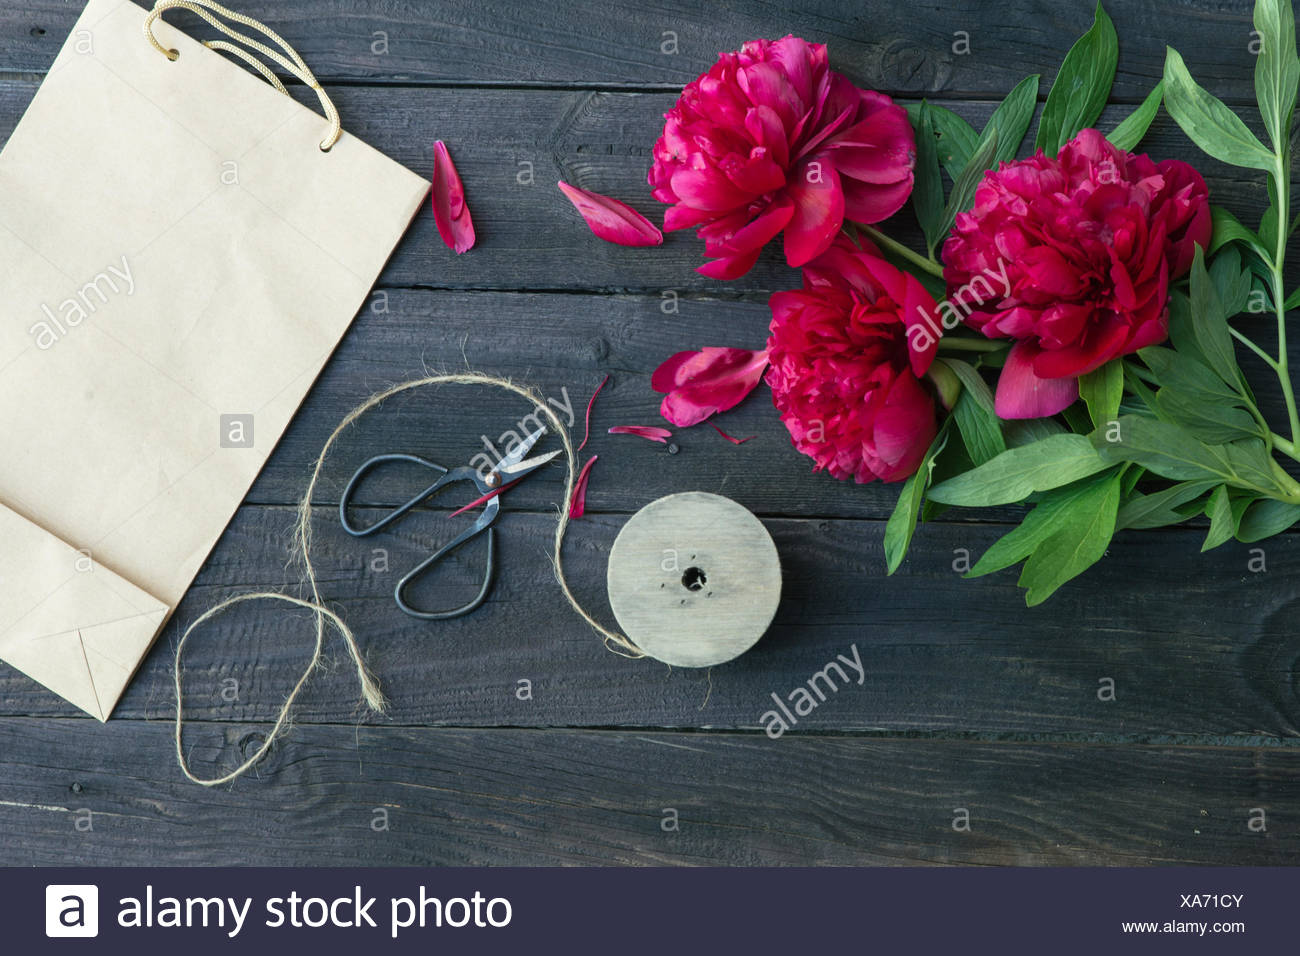 Paper bag flowers string and scissors on table stock photo paper bag flowers string and scissors on table mightylinksfo